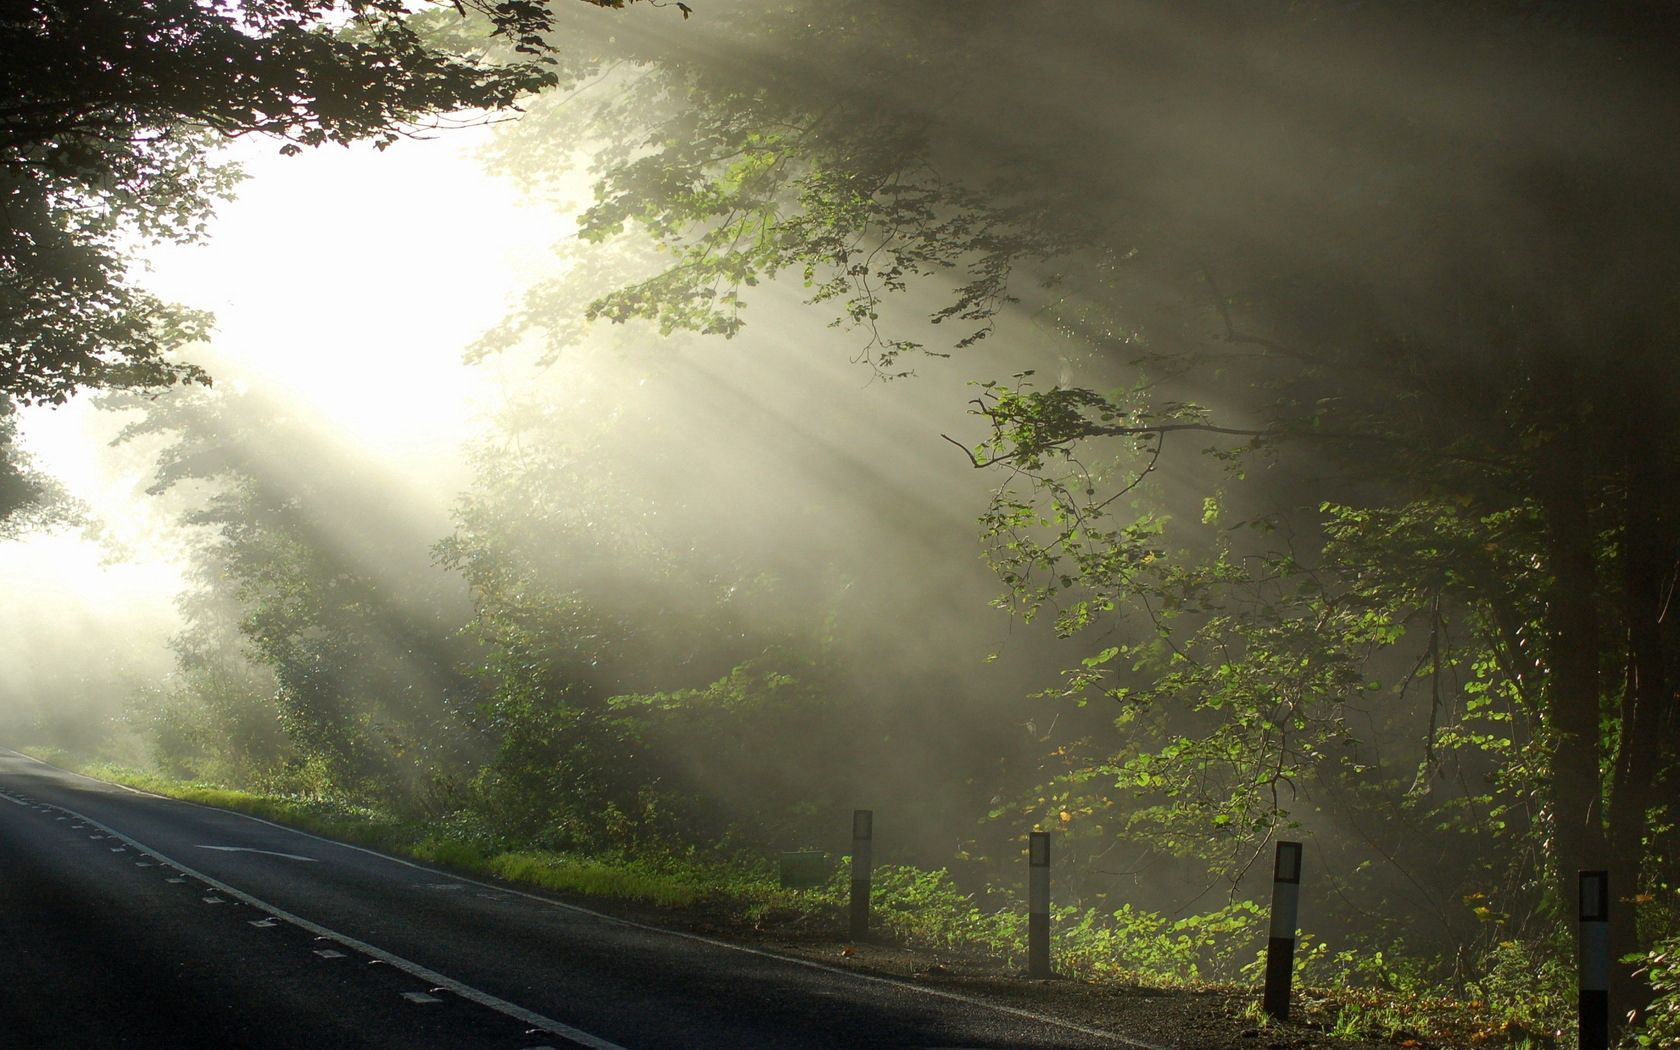 80828 download wallpaper Nature, Beams, Rays, Morning, Road, Branches, Branch, Wood, Tree, Markup, Cool, Coolness, Sun screensavers and pictures for free